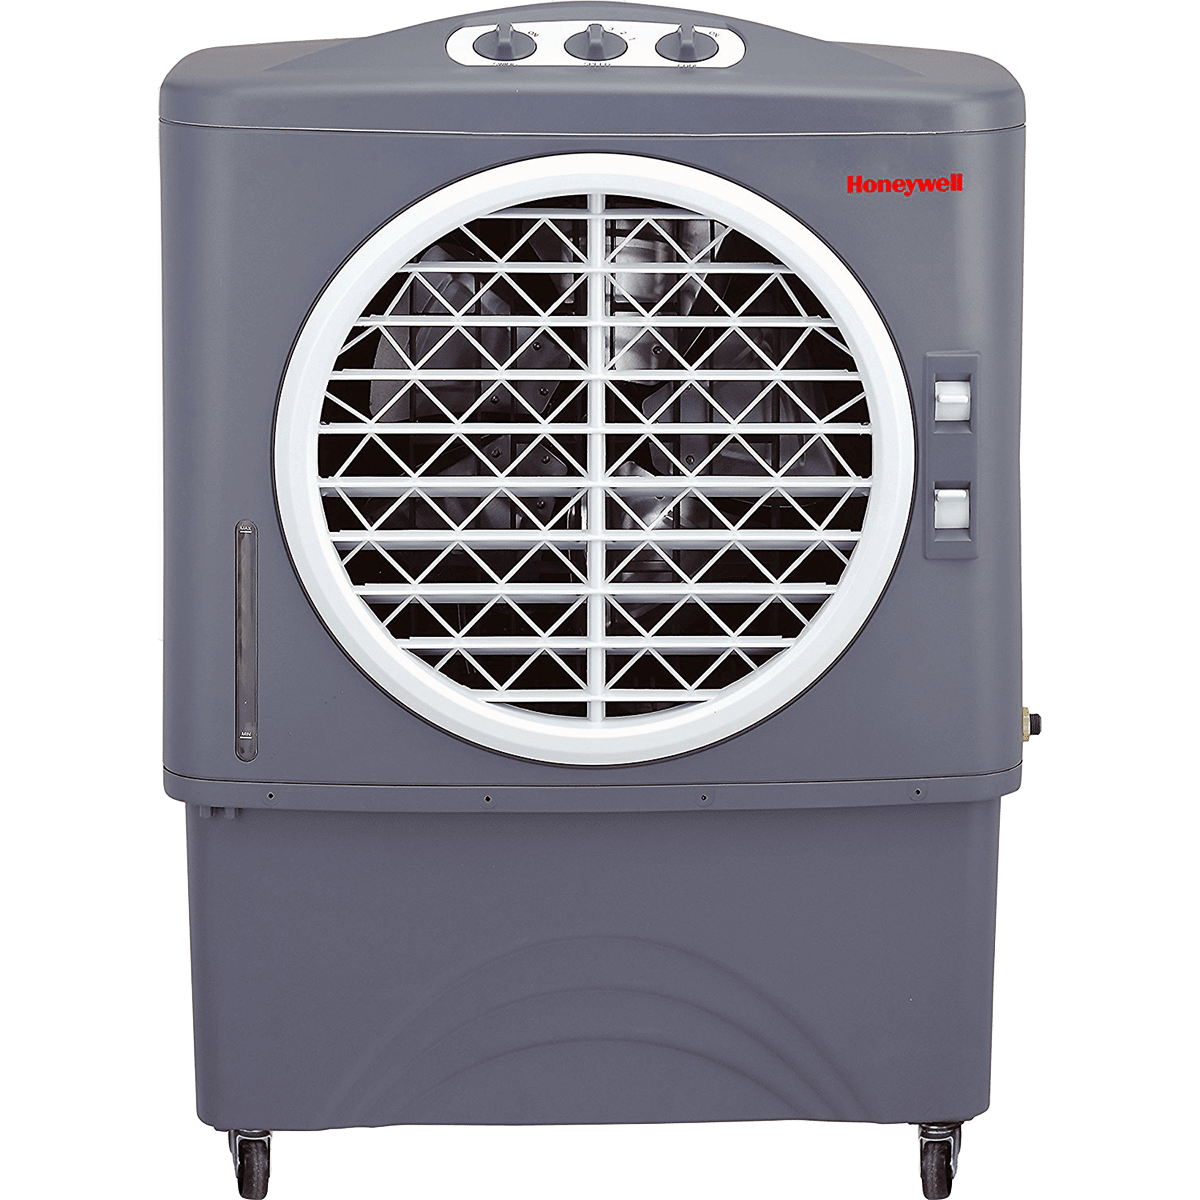 Honeywell 100 Pint Evaporative Air Cooler - CO48PM ho3158